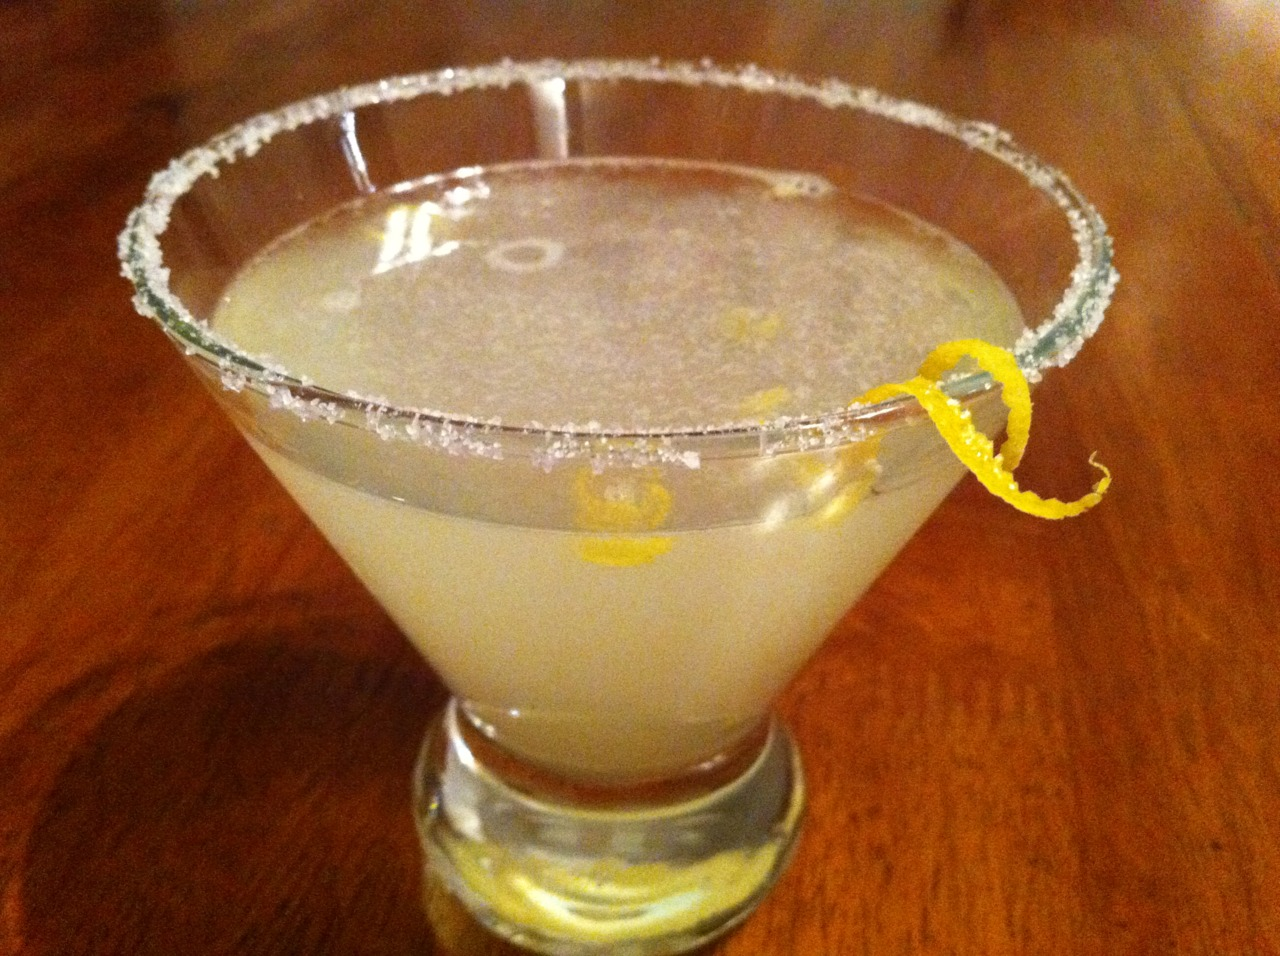 Lemon Drop my wife made this weekend. It was perfect.